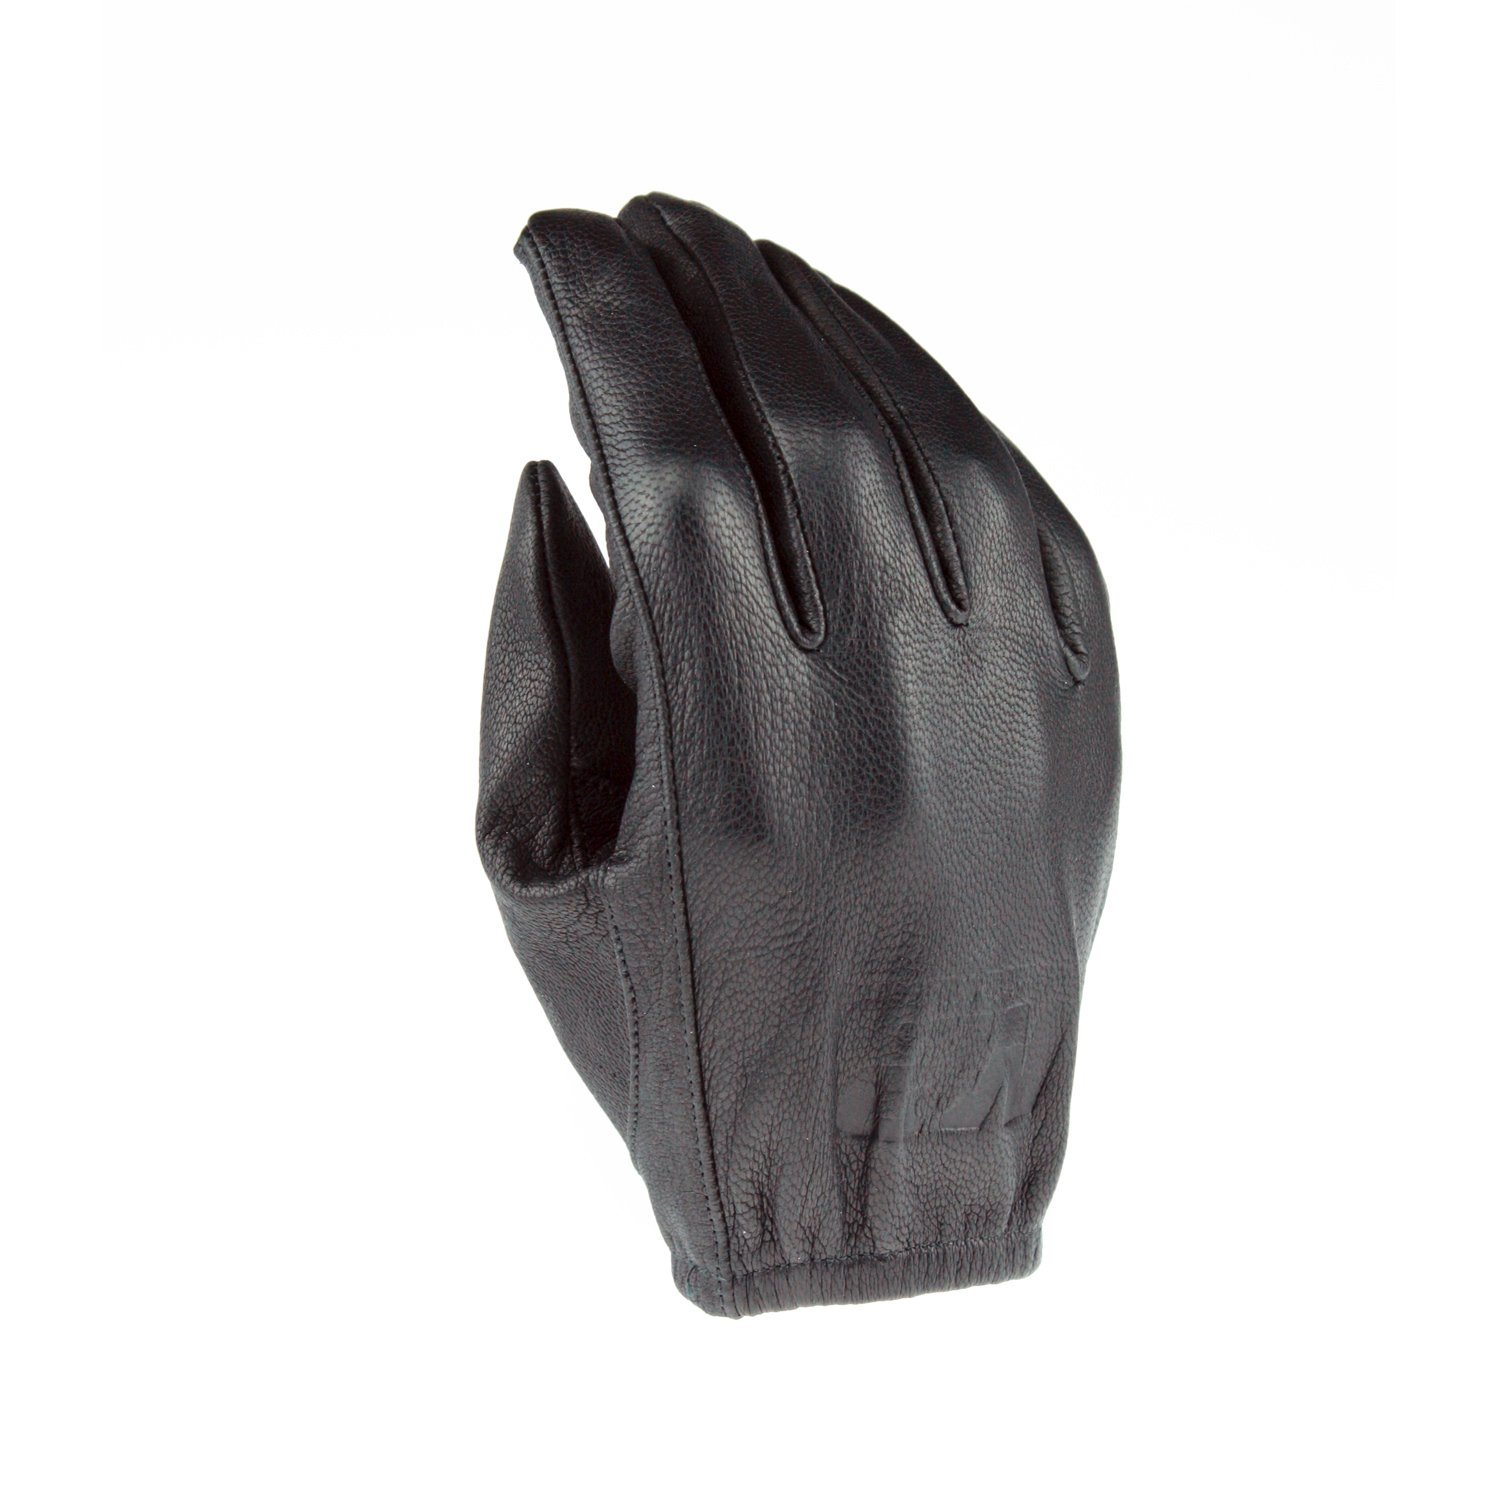 M&P by Smith & Wesson MP301 Goat Skin Search Gloves -Large